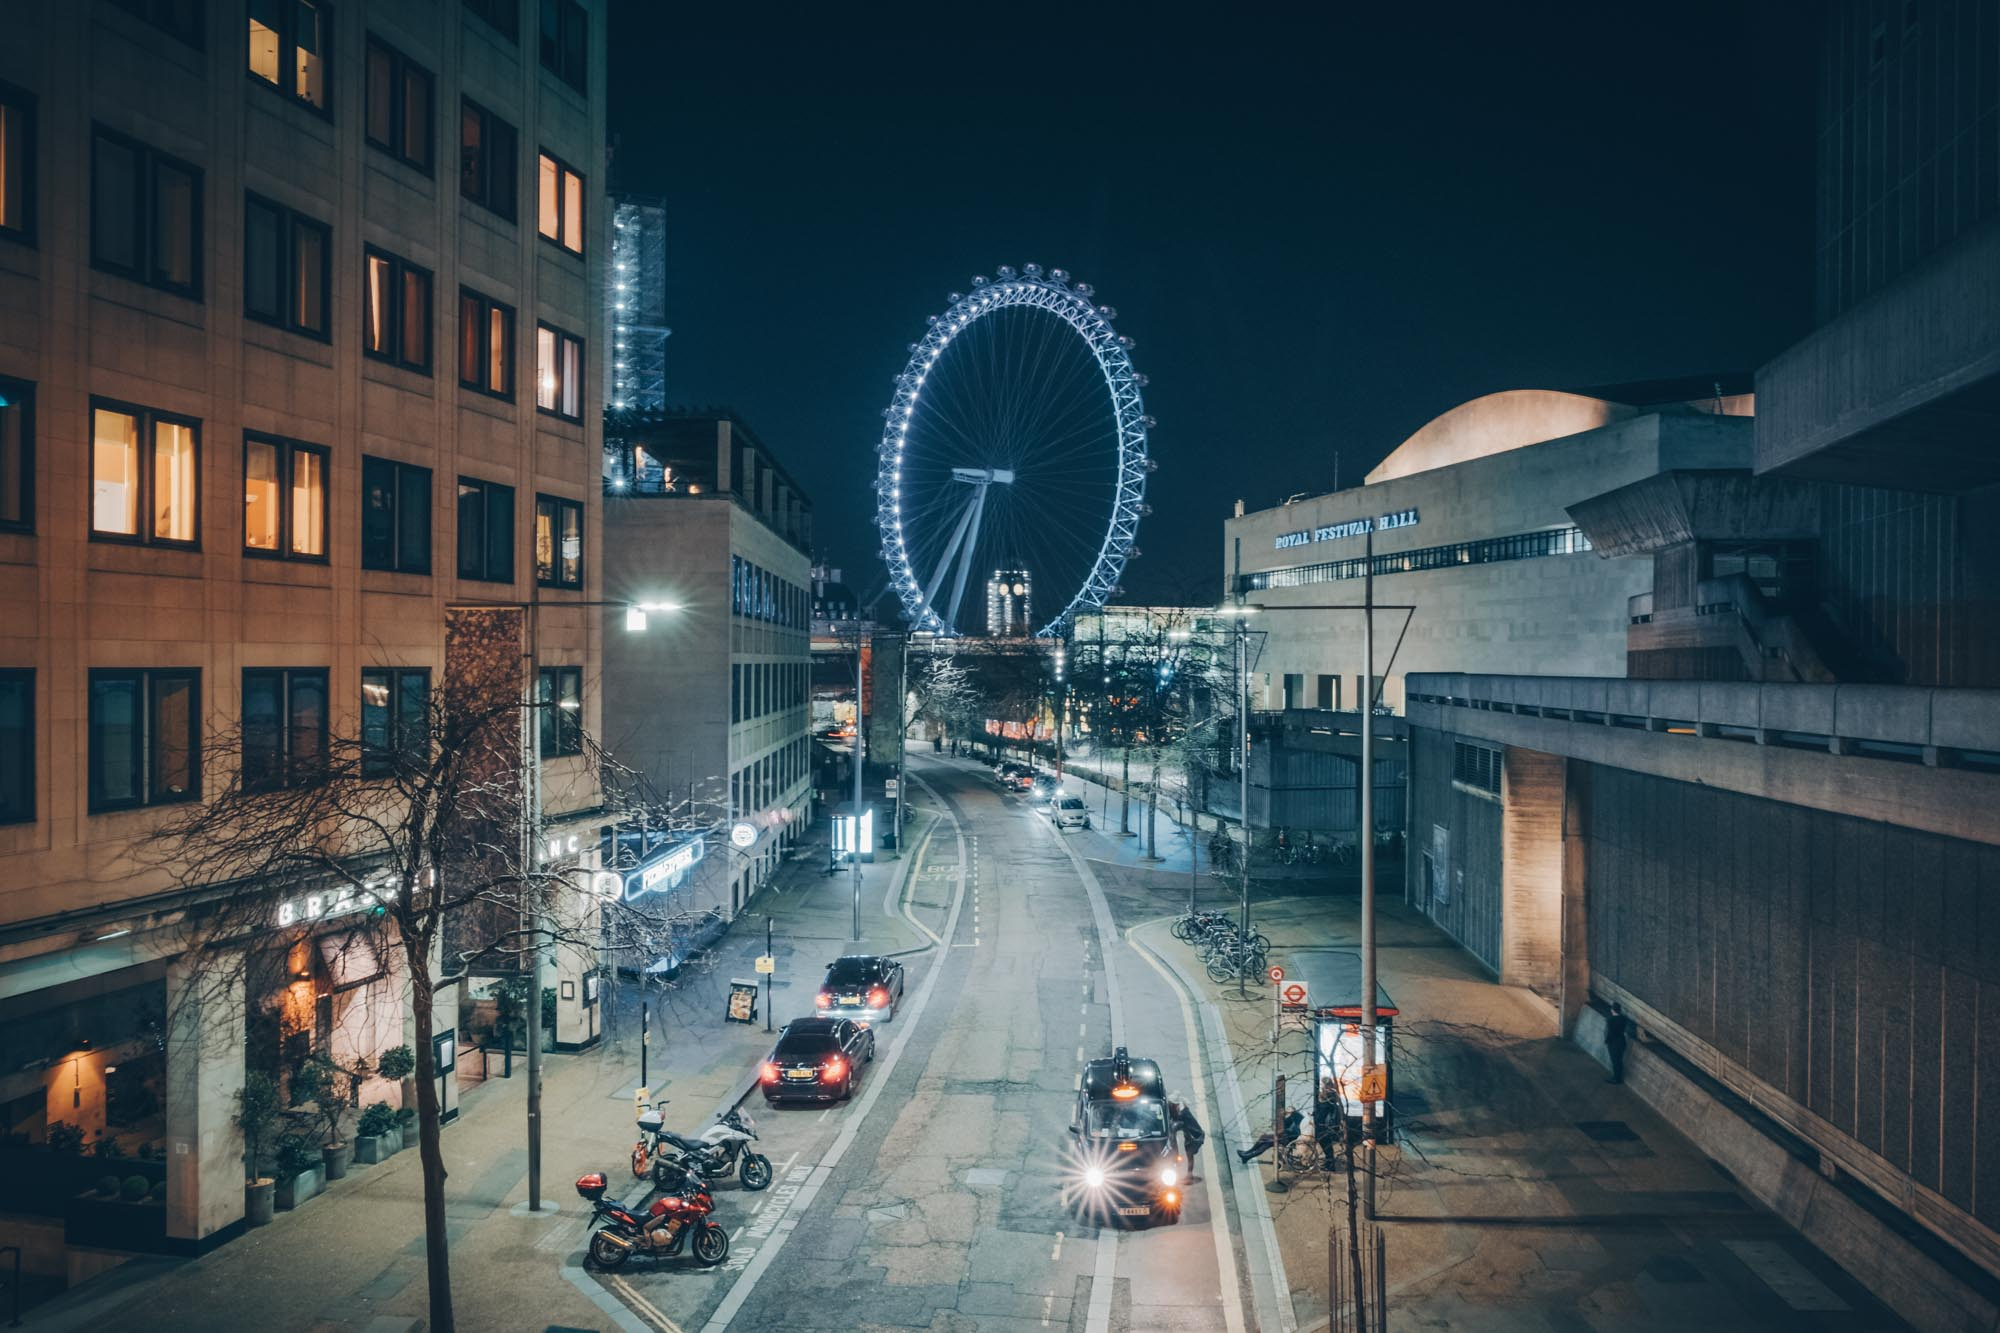 A taxi driver picking up in London while the London Eye shines bright in the background